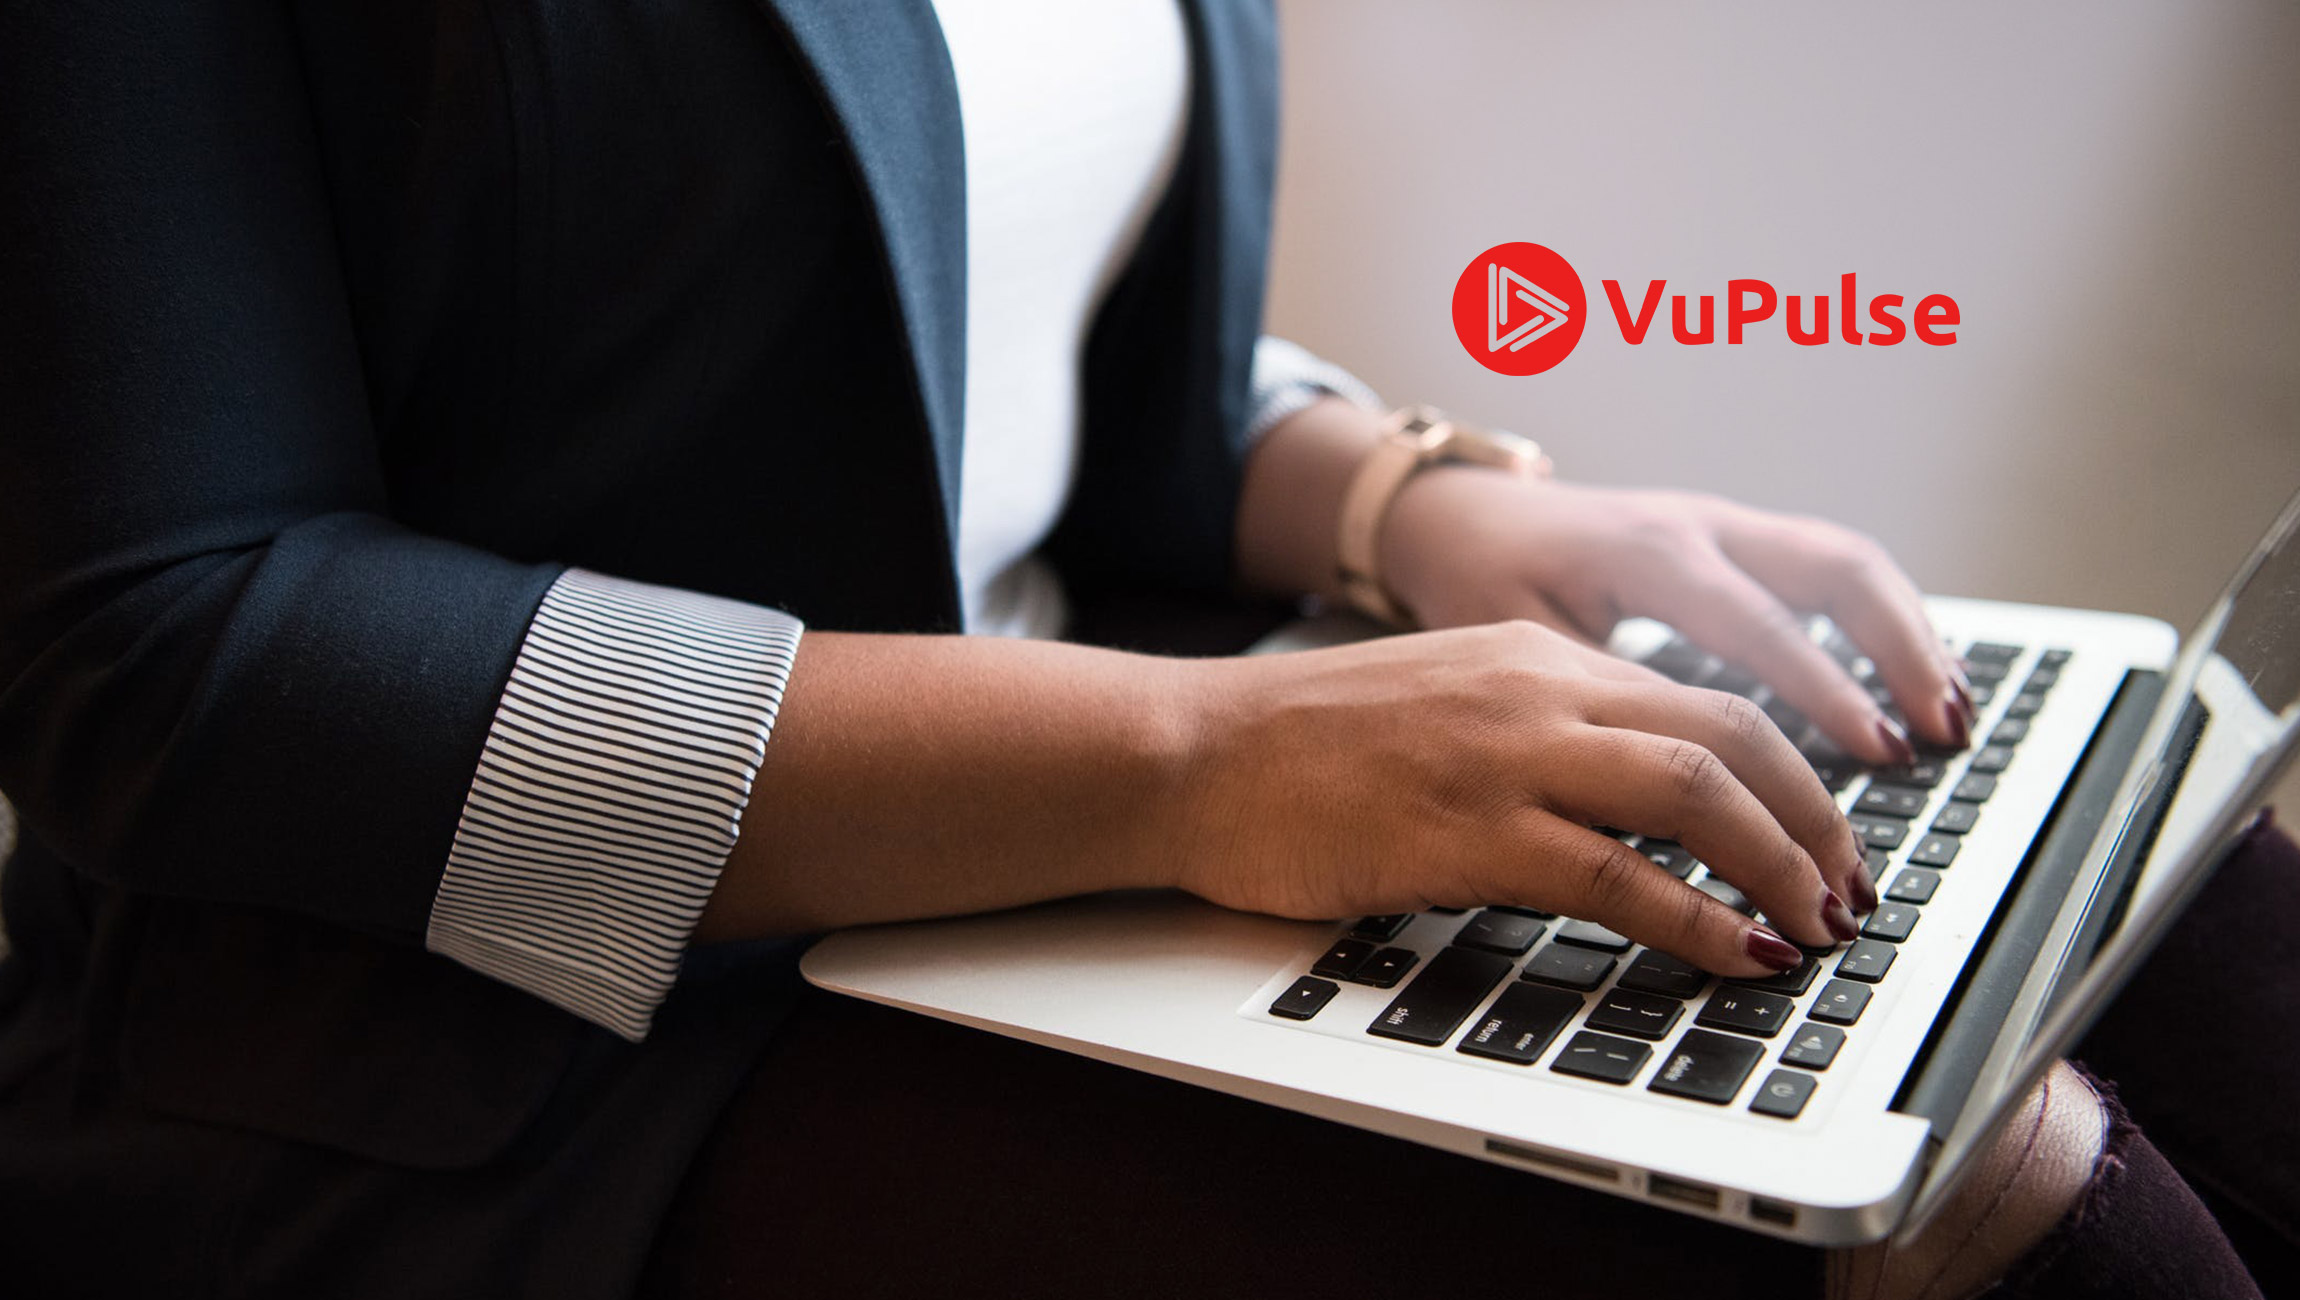 VuPulse Raises $1 Million in Series A Funding From Florida Funders and Bridge Angel Investors